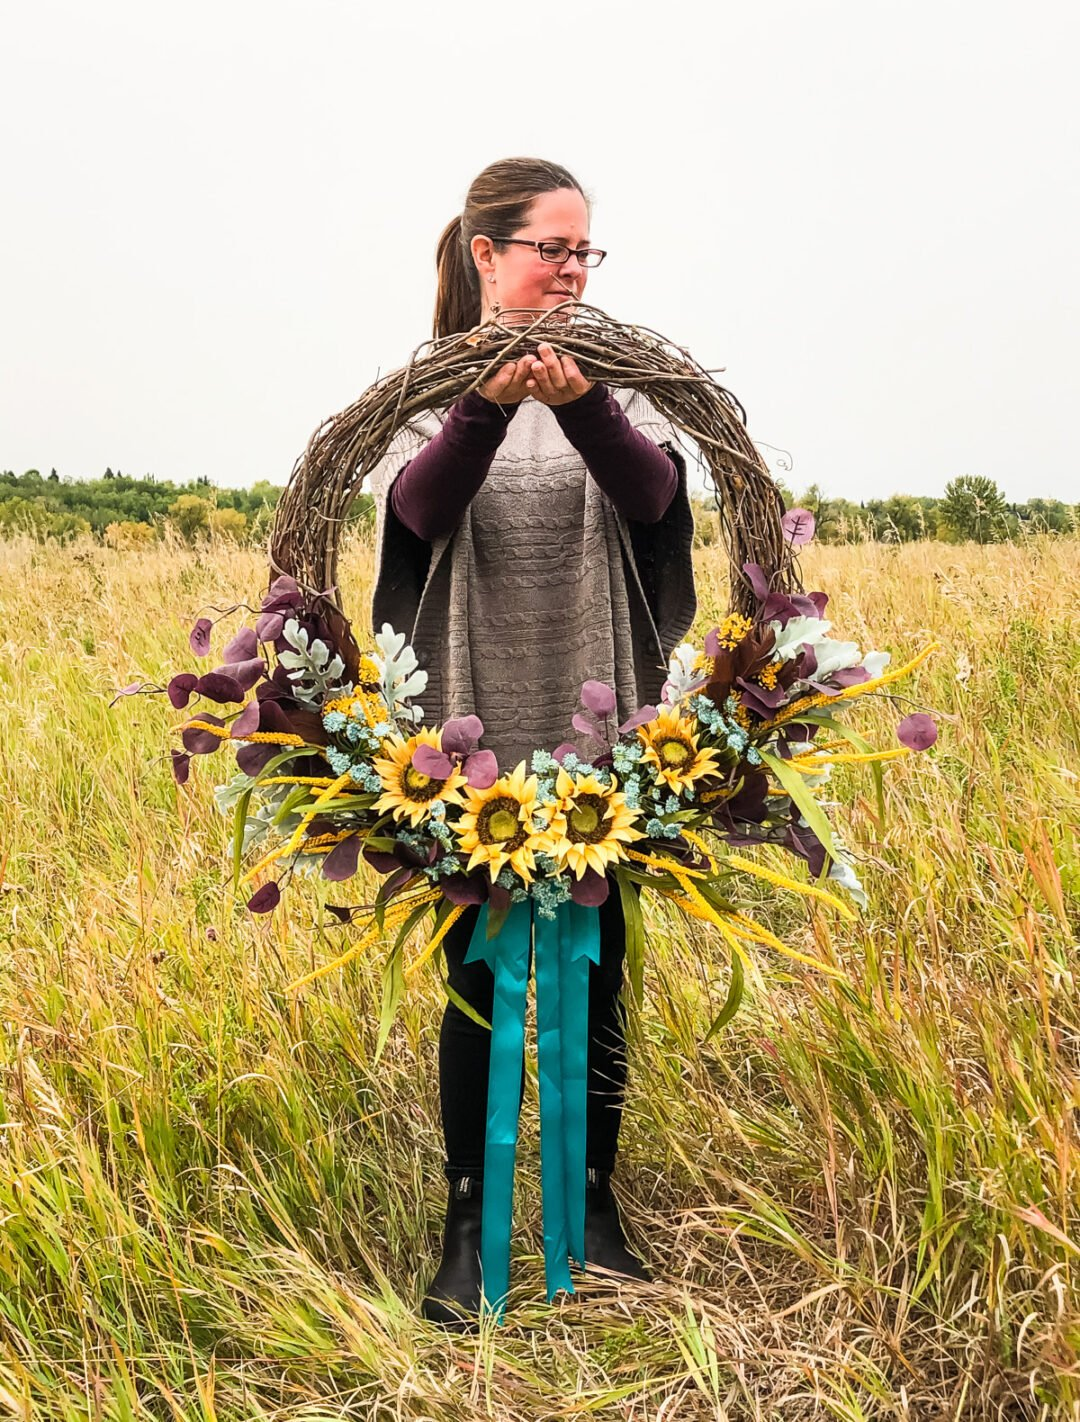 A fall flower wreath being held out in a field